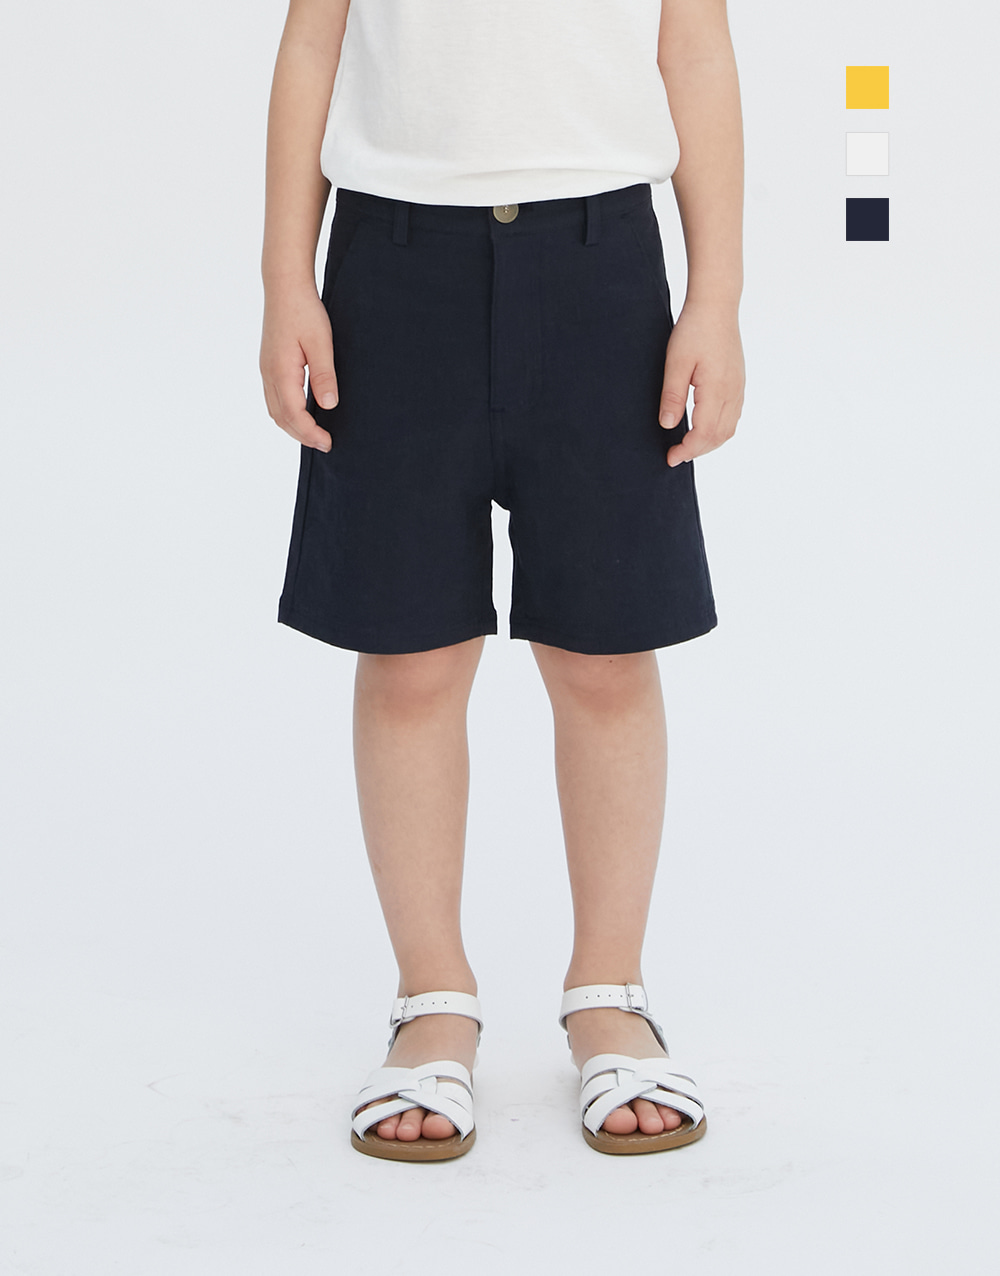 GBH APPAREL KIDS   MODERN SHORT  (3 COLORS)